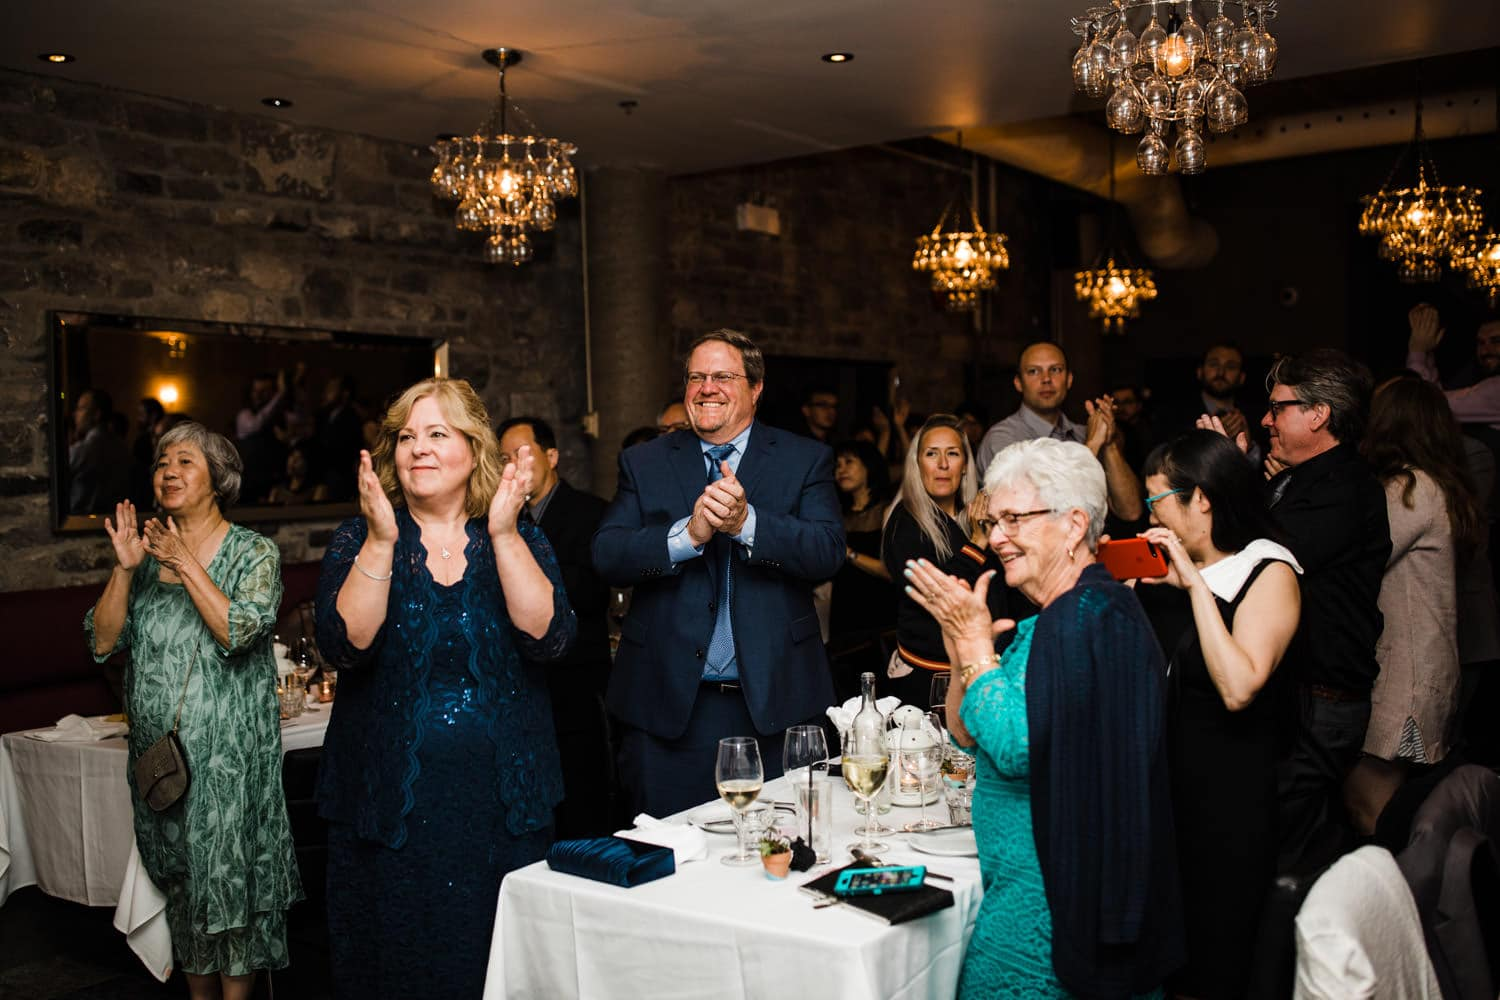 guests give bride and groom standing ovation - sidedoor wedding reception